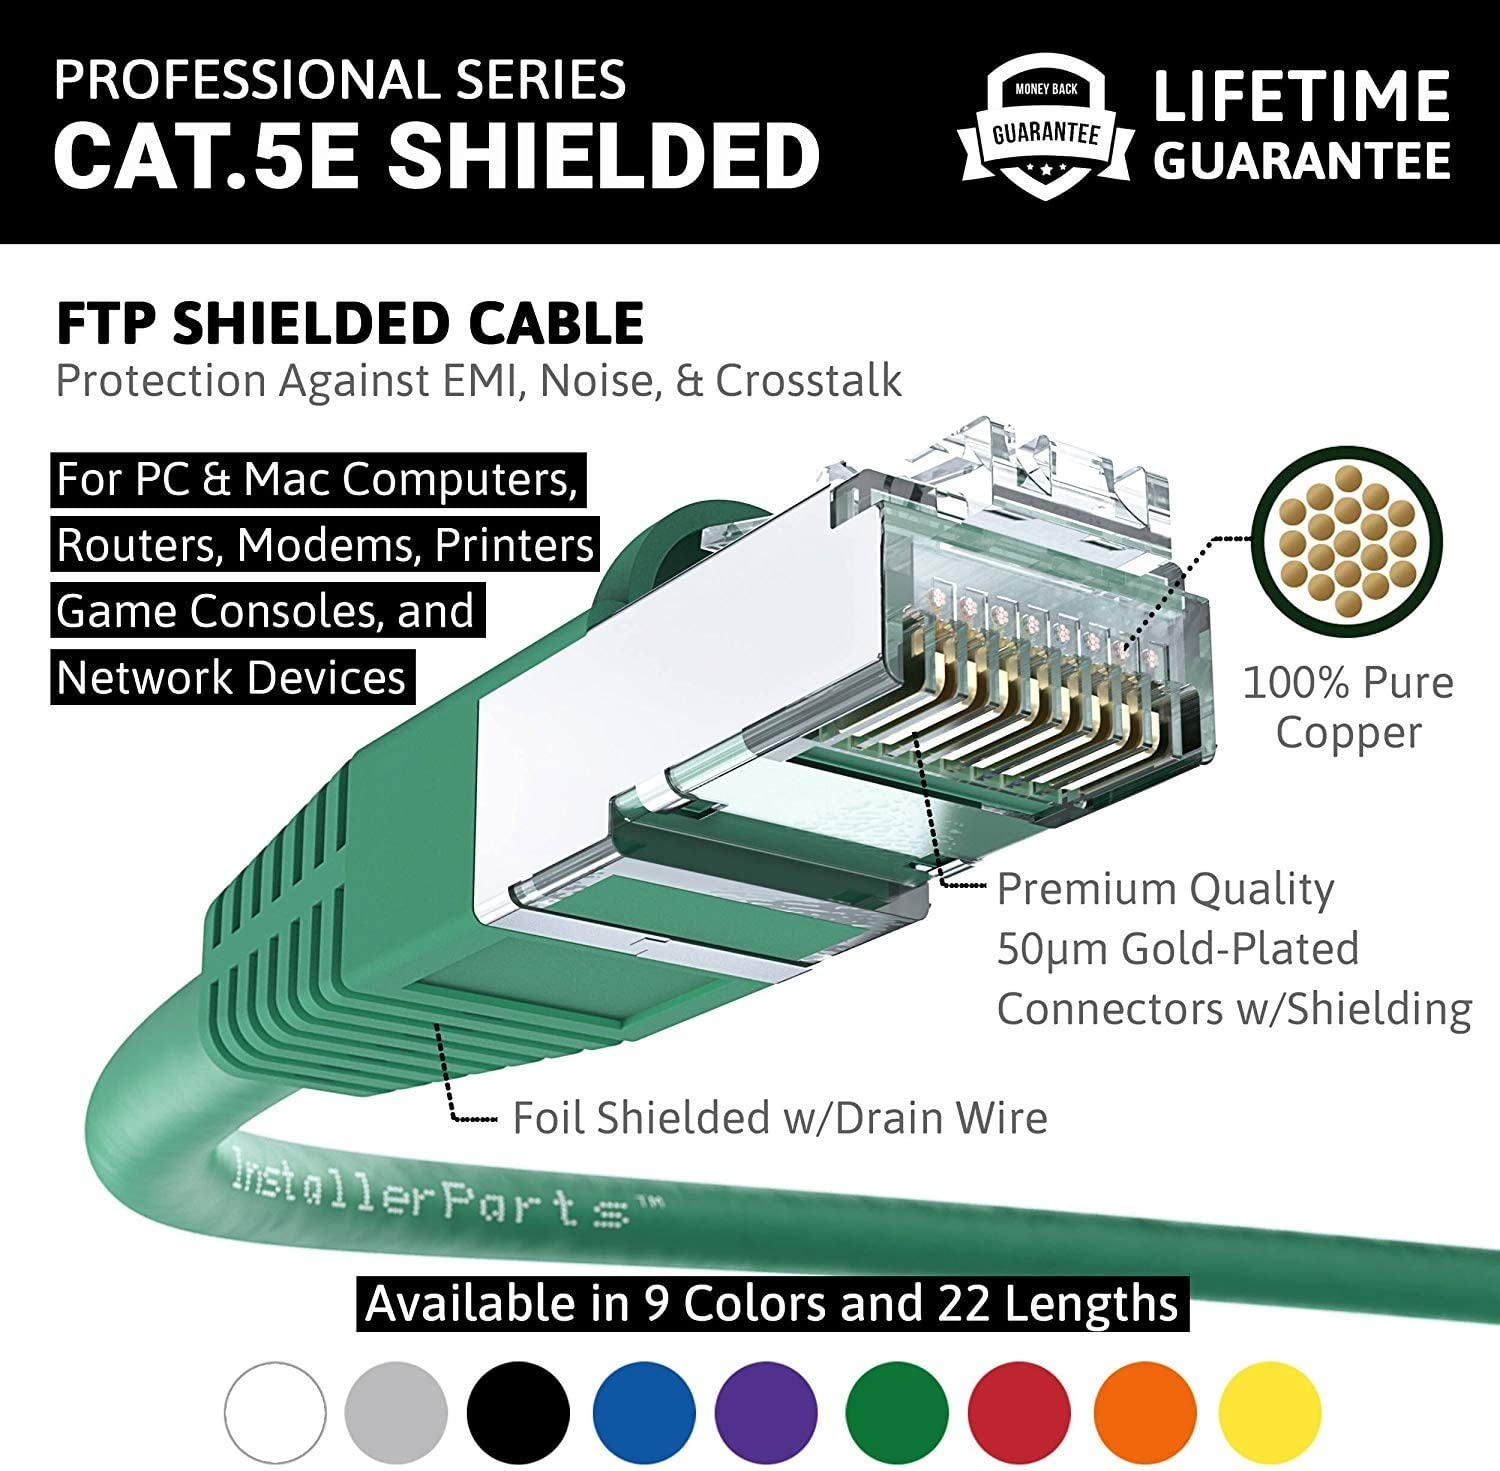 Booted 3 FT 350MHZ Green 1Gigabit//Sec Network//Internet Cable 100 Pack Ethernet Cable CAT5E Cable Shielded InstallerParts FTP Professional Series